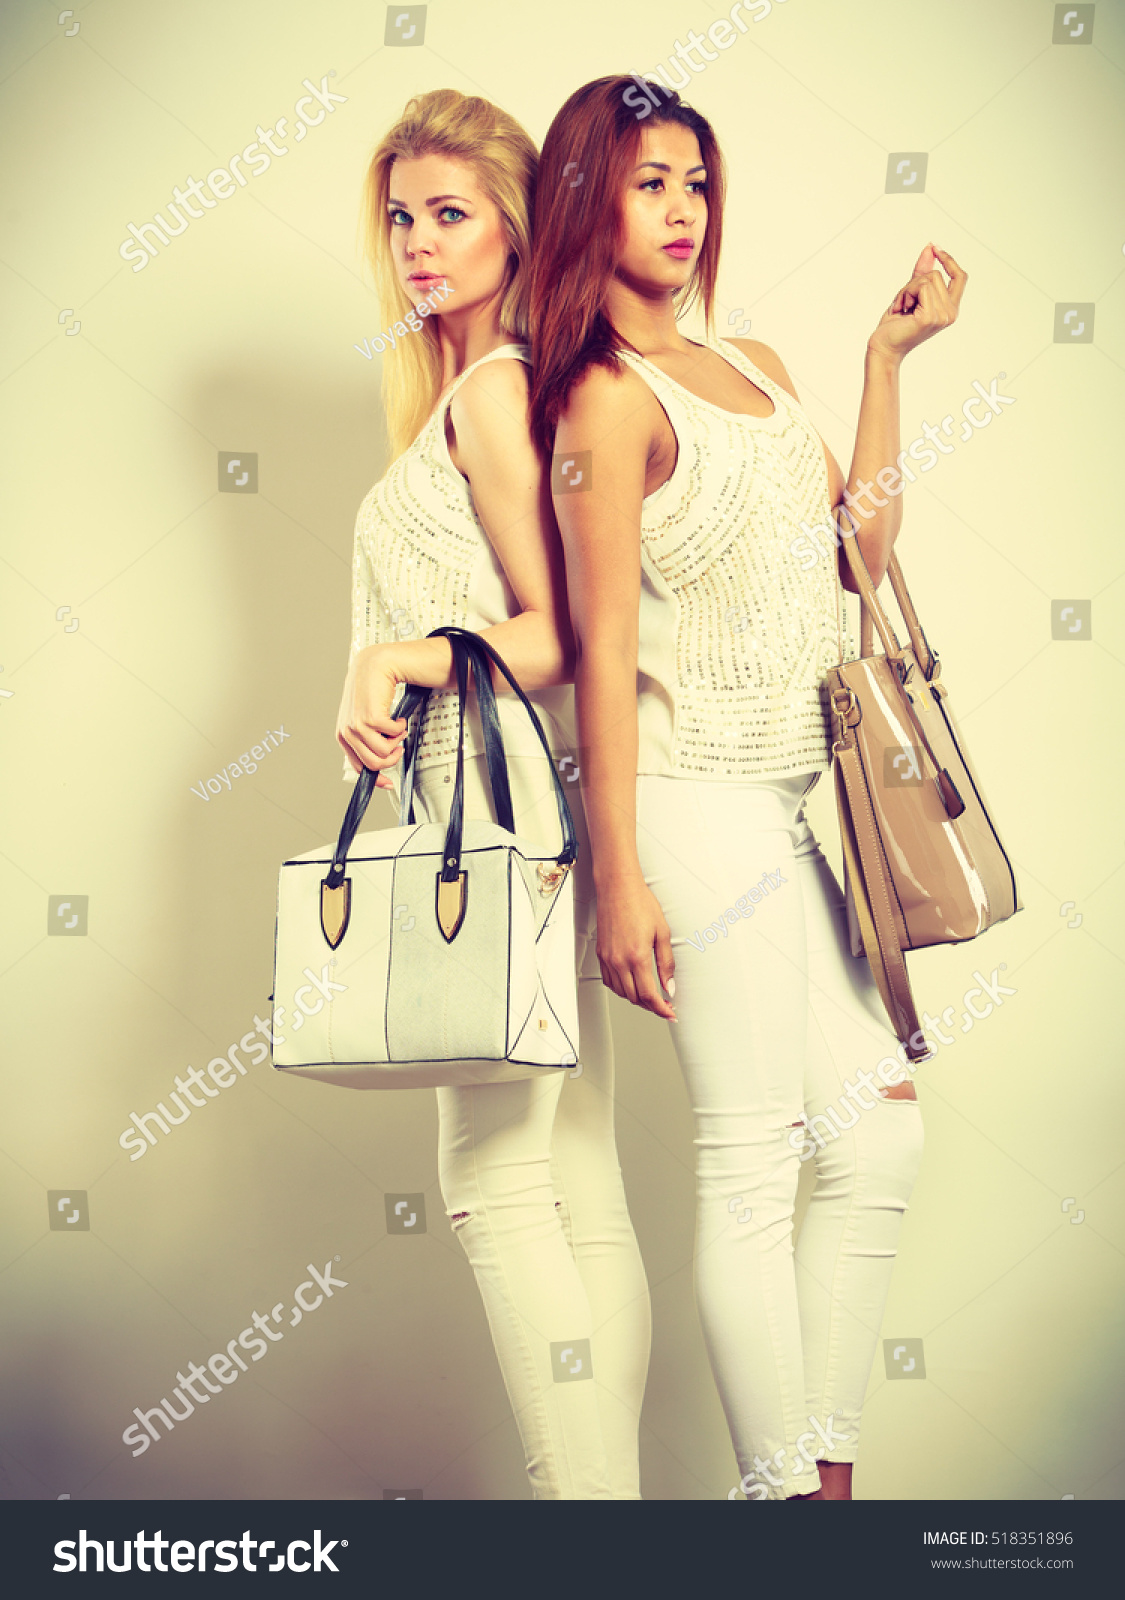 Fashion Accessories Clothing Ladies Shot Two Stock Photo ...